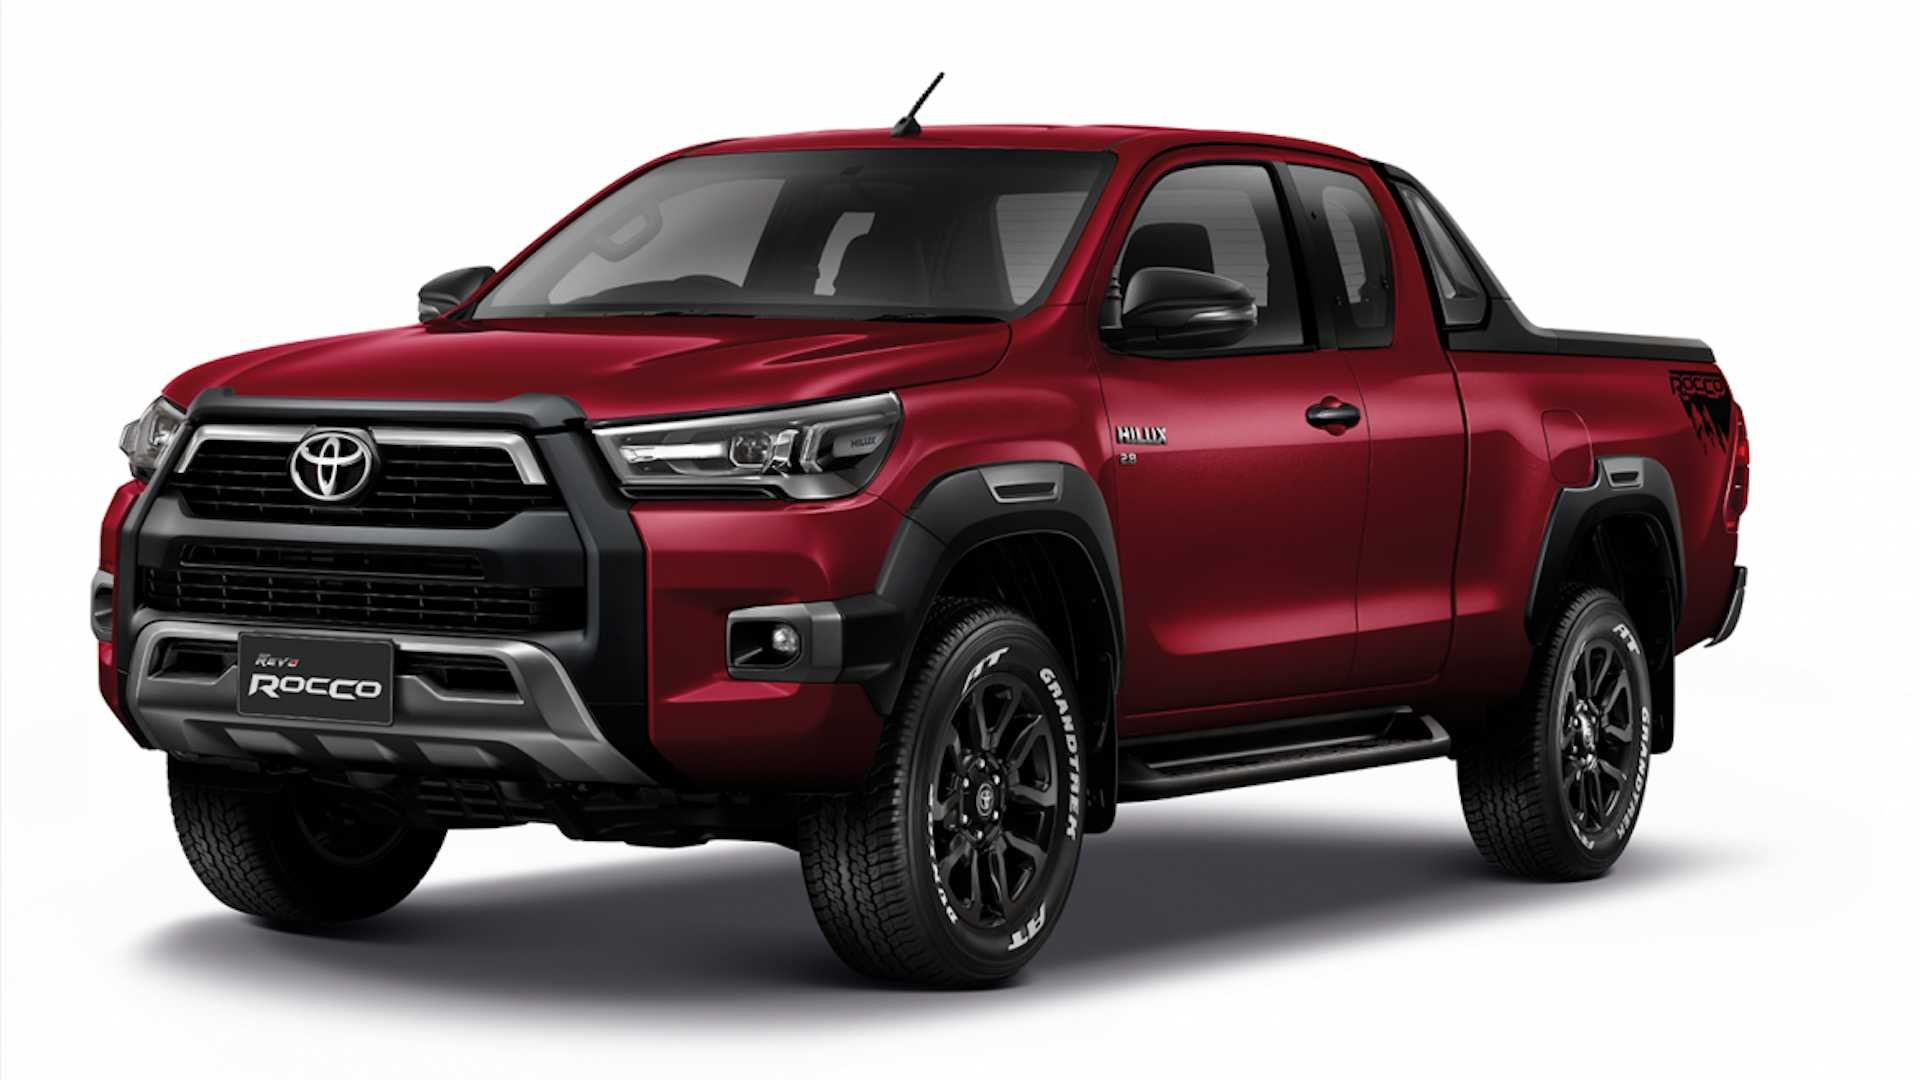 2021-toyota-hilux-launched-in-thailand-1.jpg